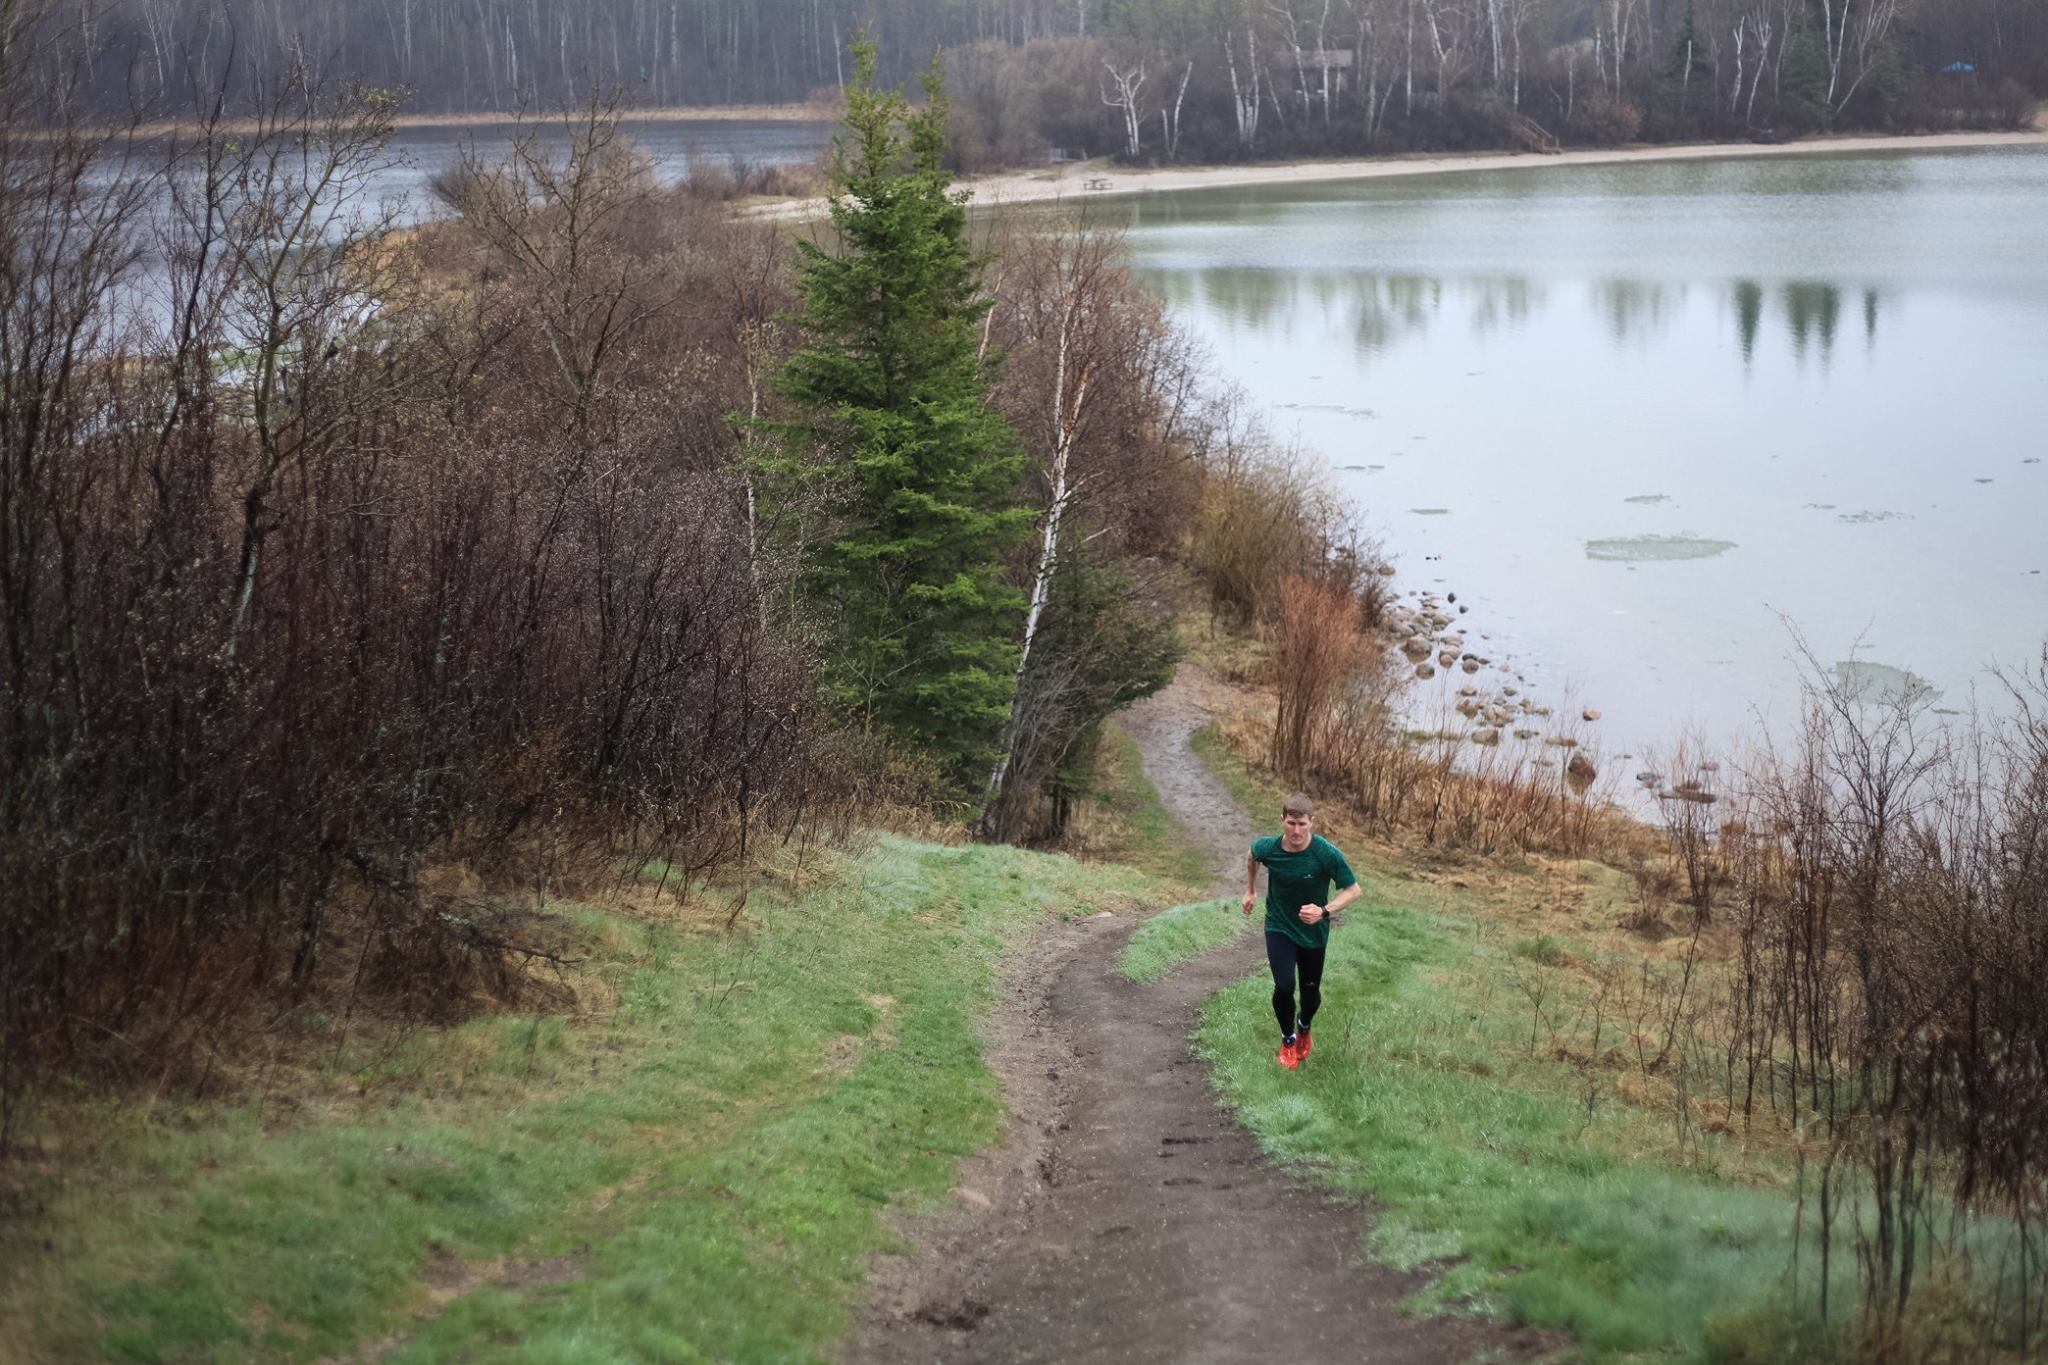 Matt running at the CLPP just north of the parking lot